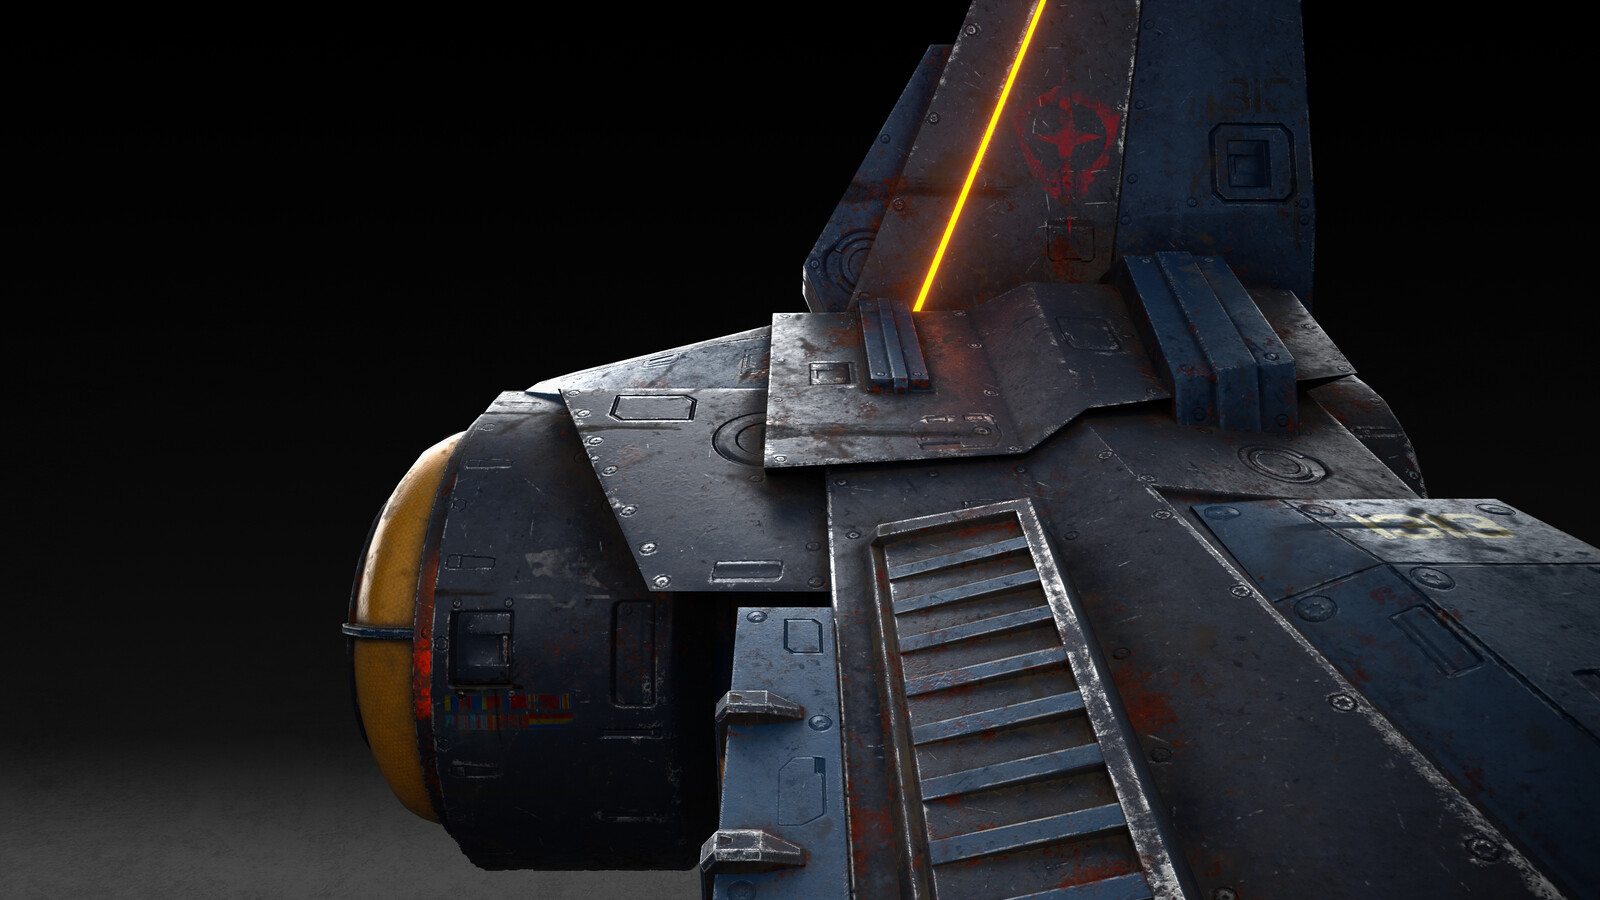 Spaceship for free course on modeling and texturing for games.